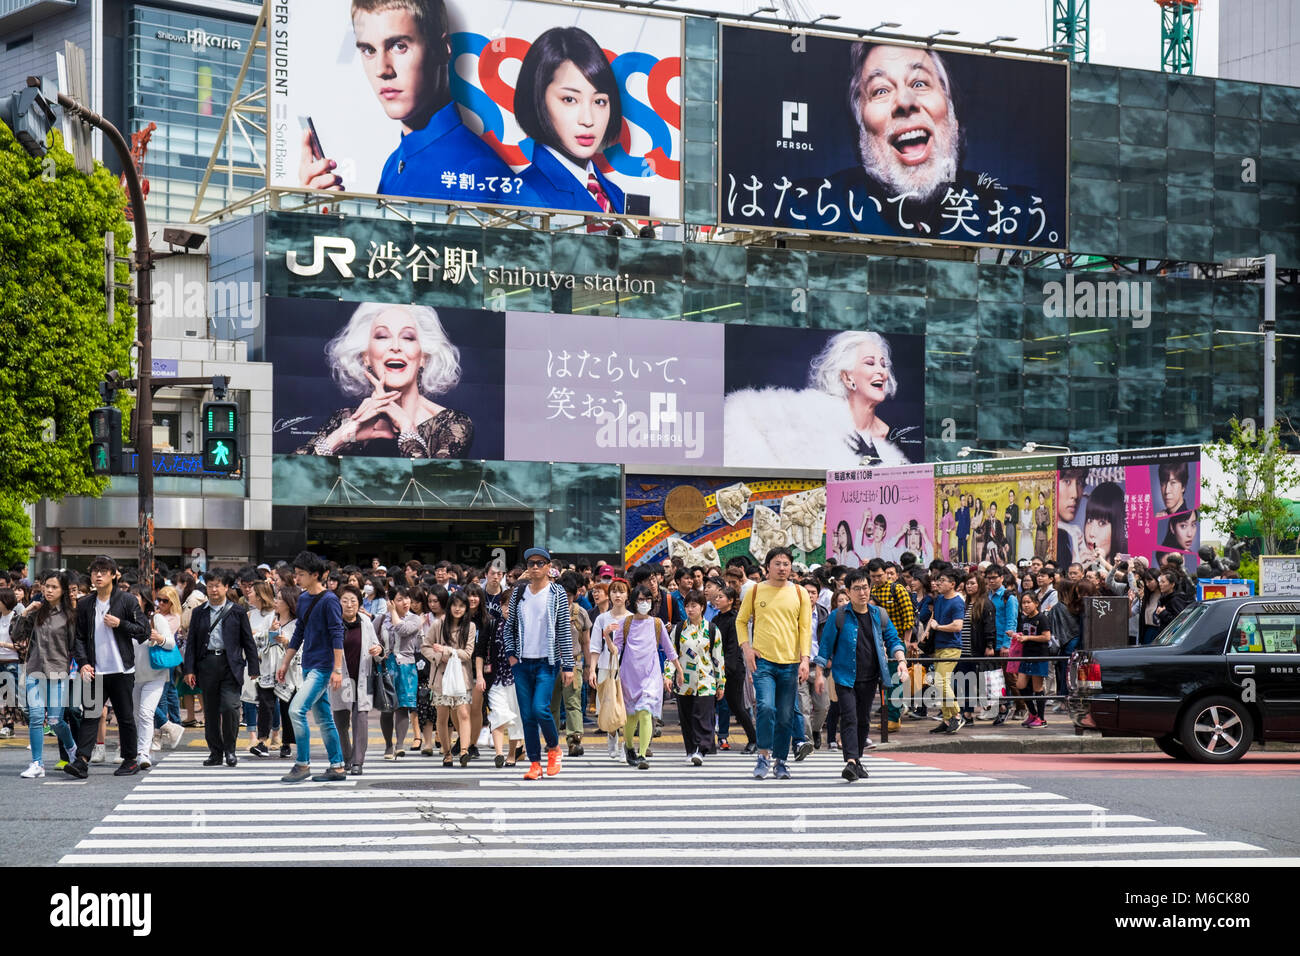 Shibuya Crossing, Tokyo Japan - crowds on the crosswalk - Stock Image